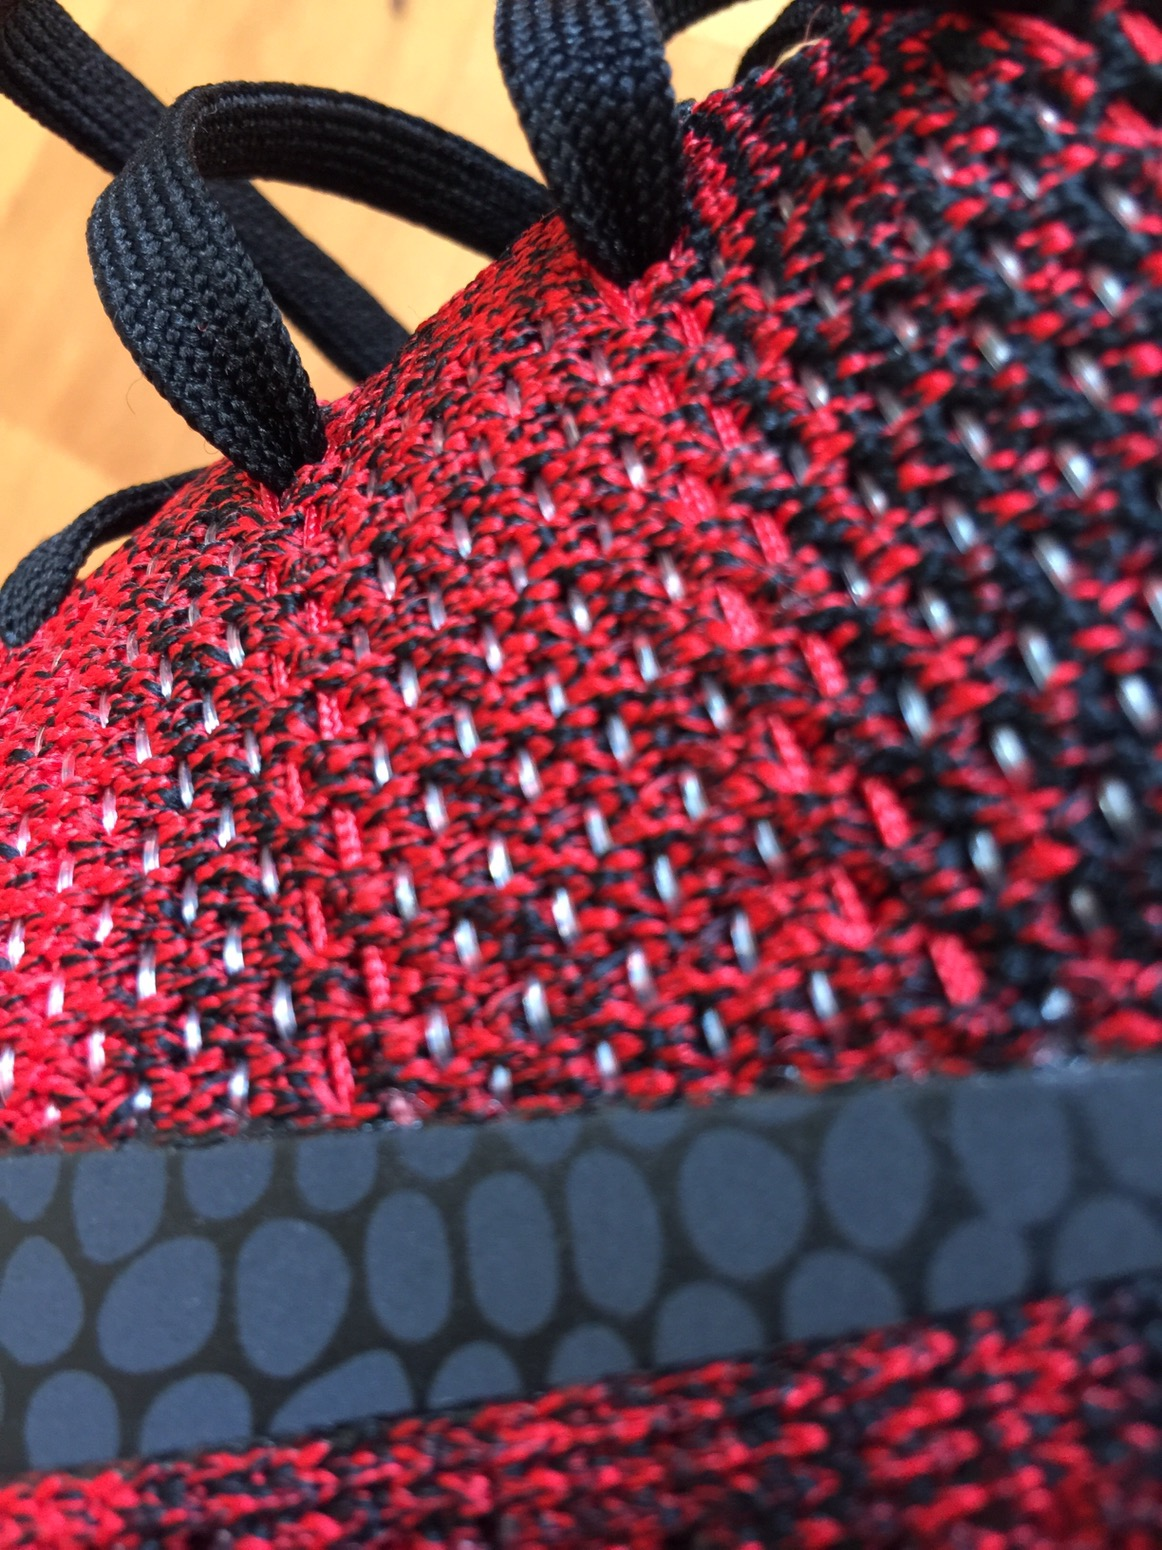 d0aff6e69b59 The story of the upper is the Flyknit infused with what looks like fishing  line (TPU).